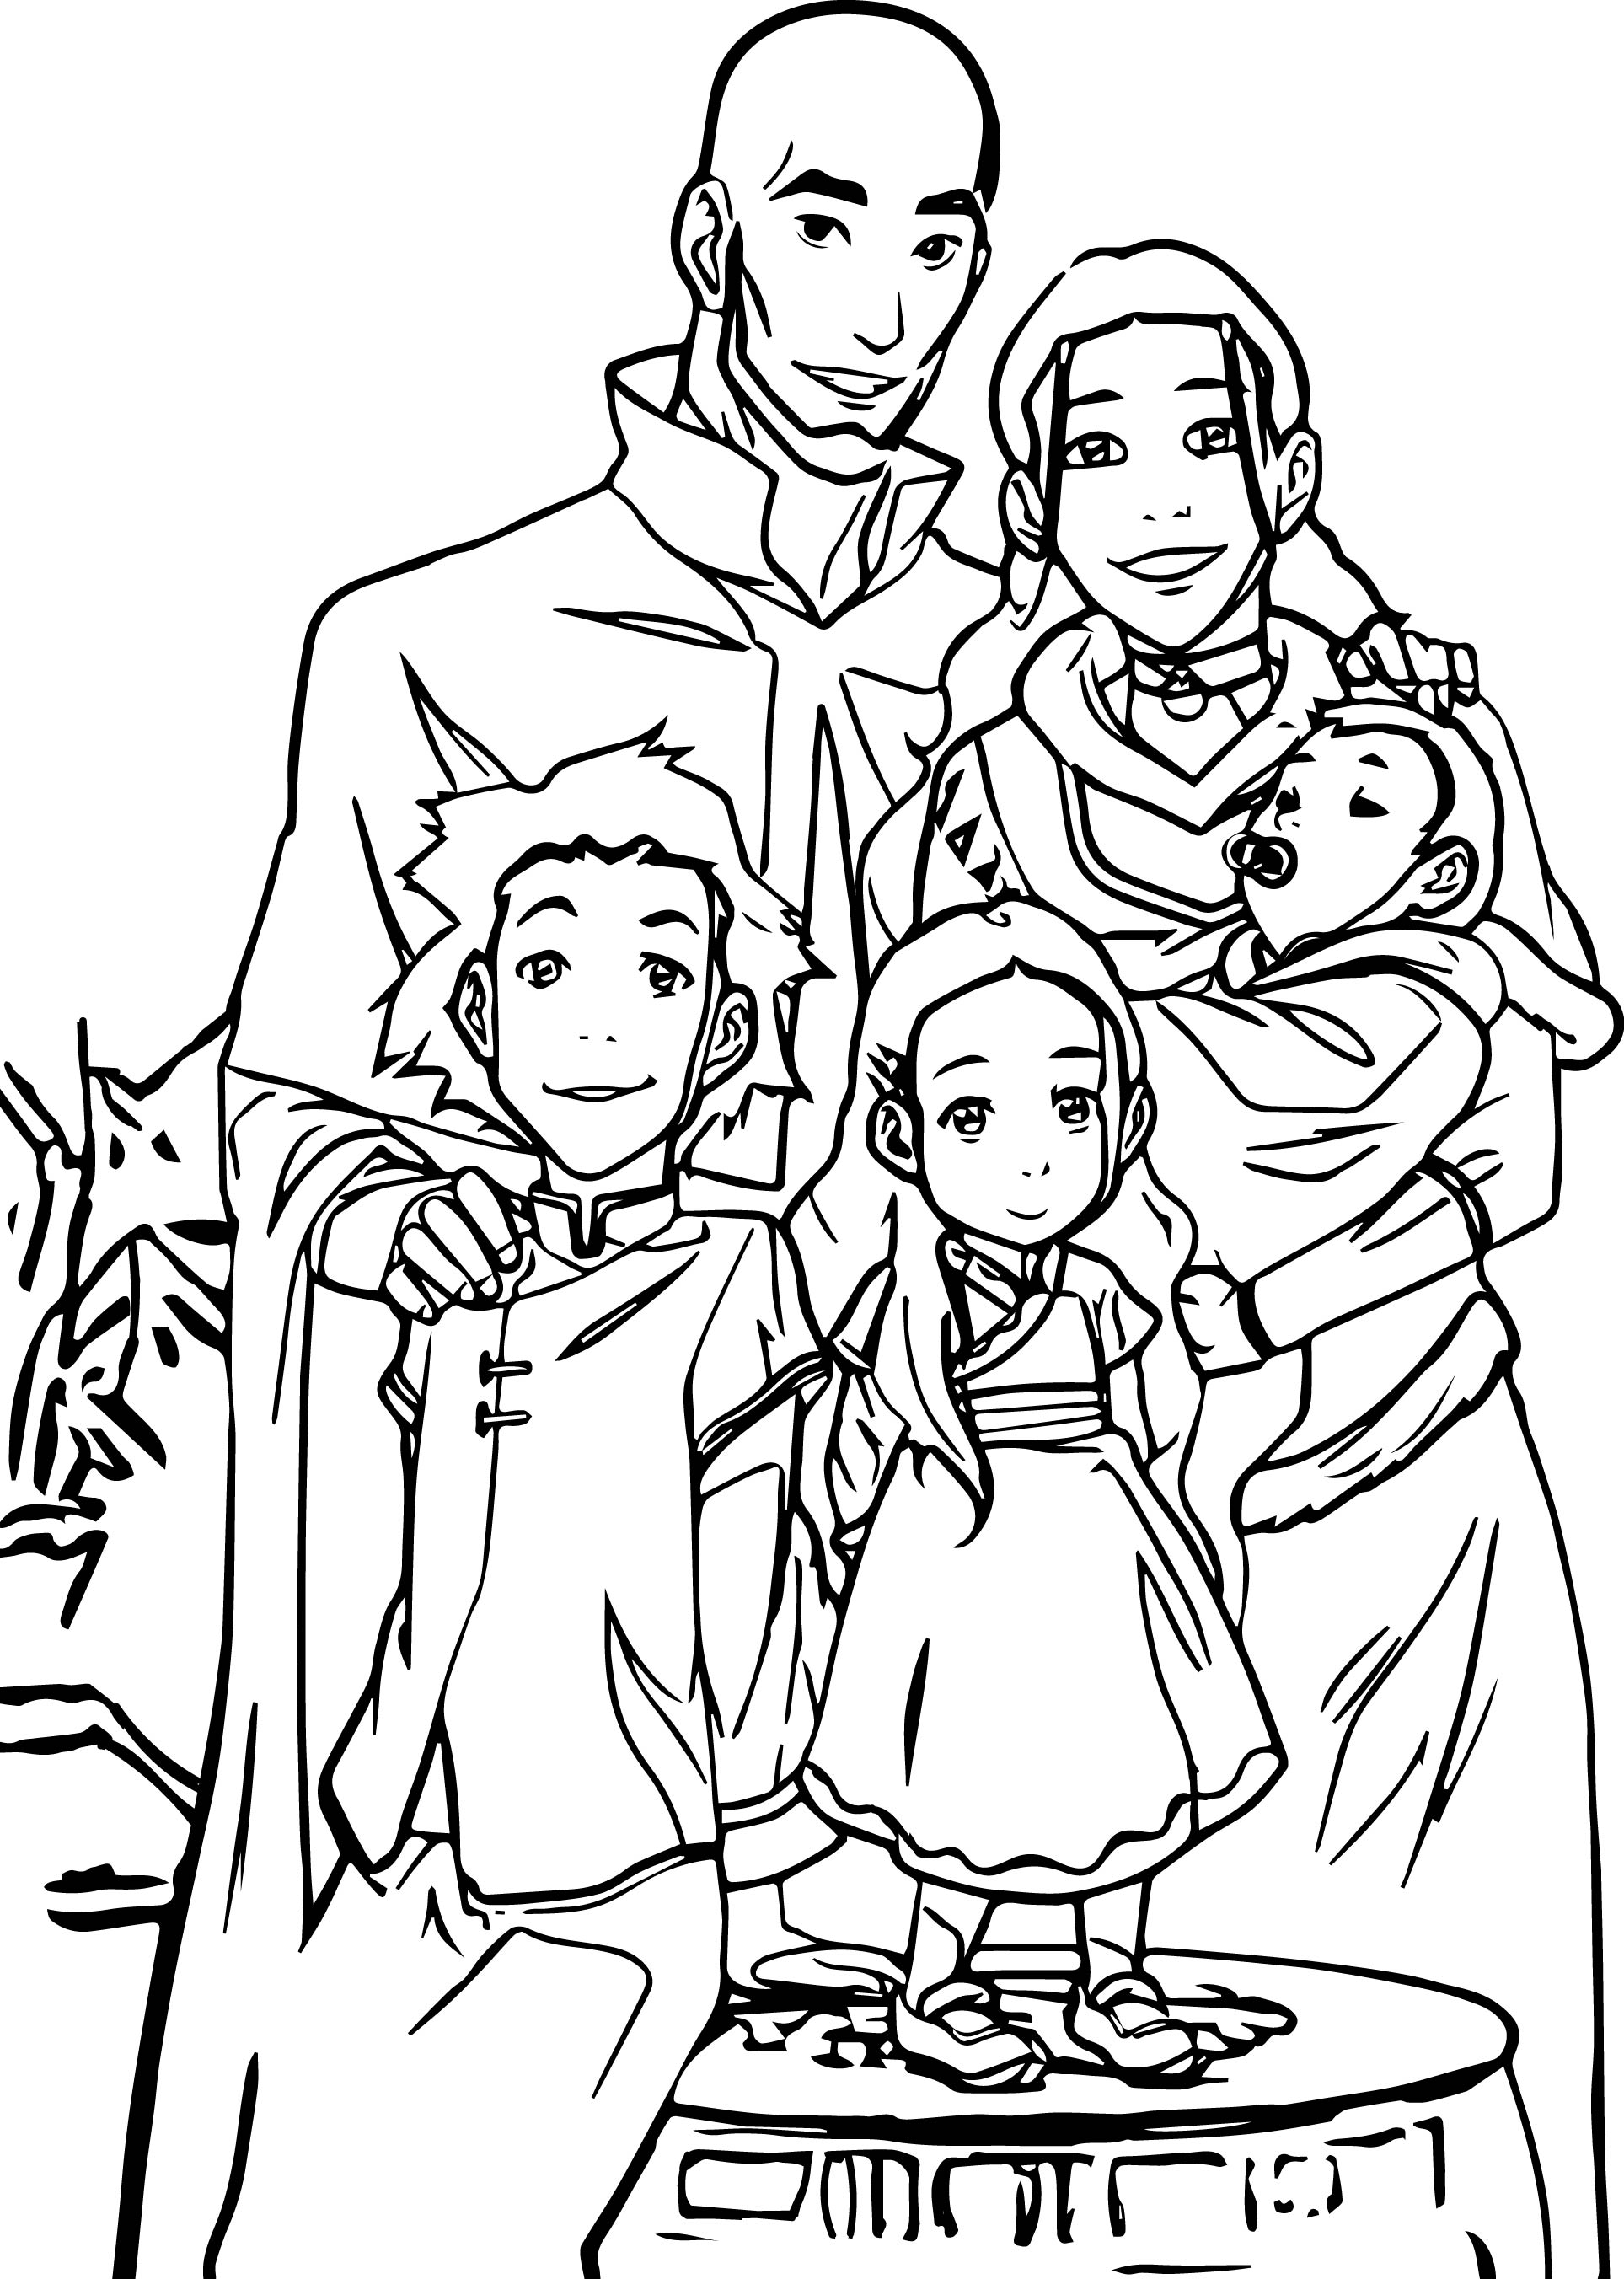 aang and kataras family portrait avatar coloring page wecoloringpage